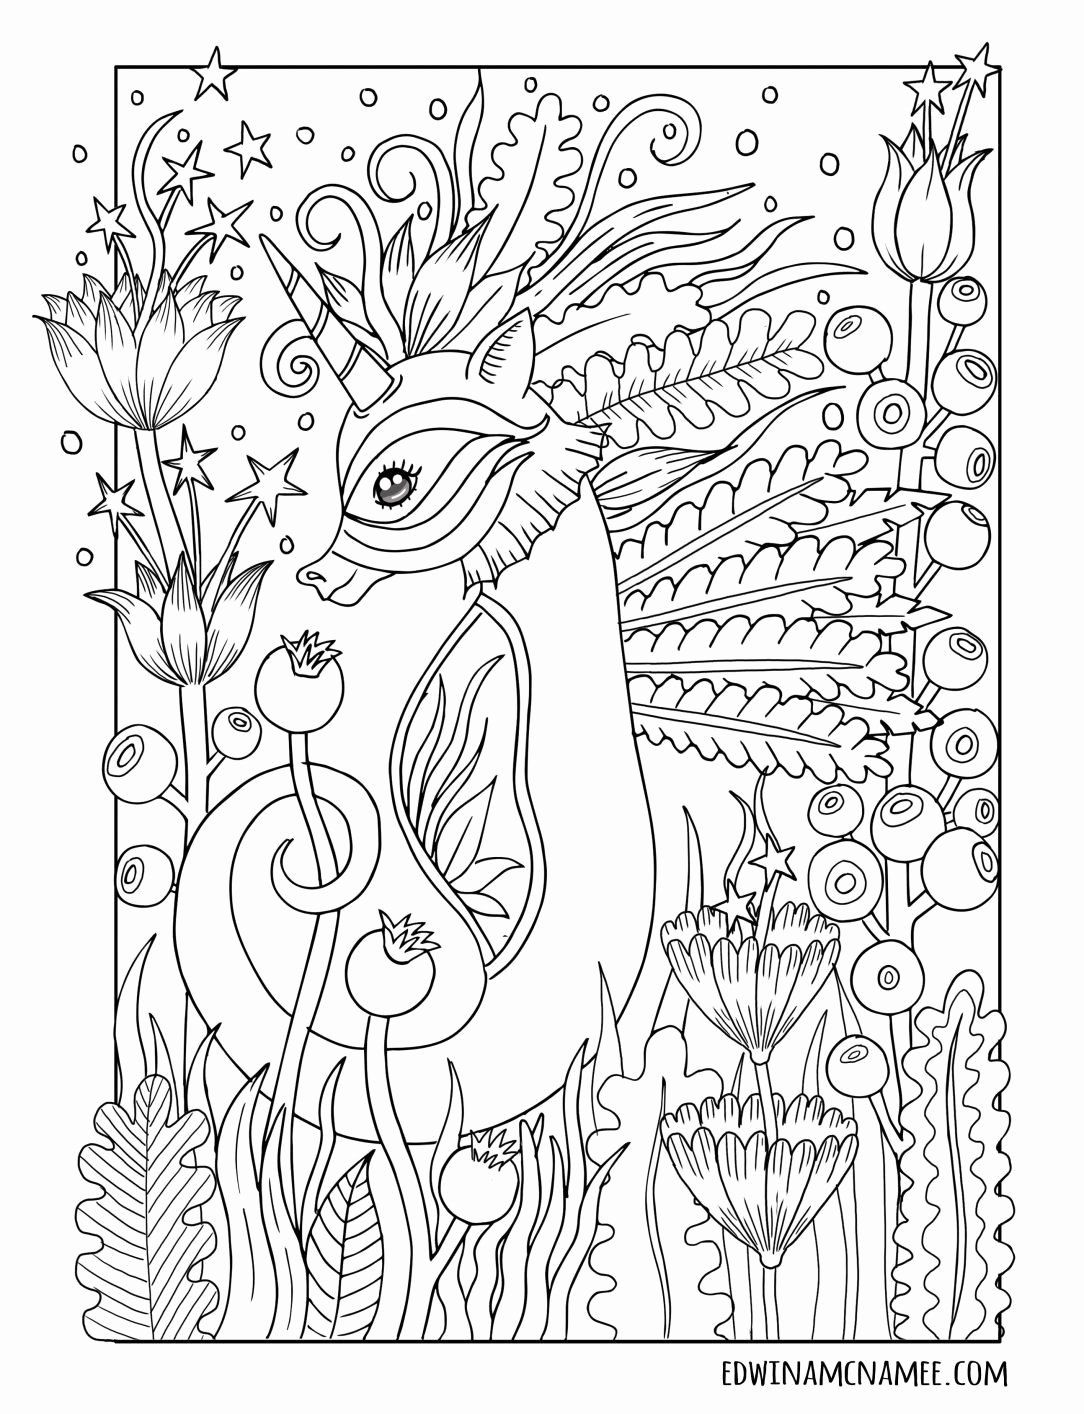 Interior Design Coloring Book Inspirational Of Coloring Books For Adults Tar Sabadaphnecottage Designs Coloring Books Coloring Pages Coloring Books